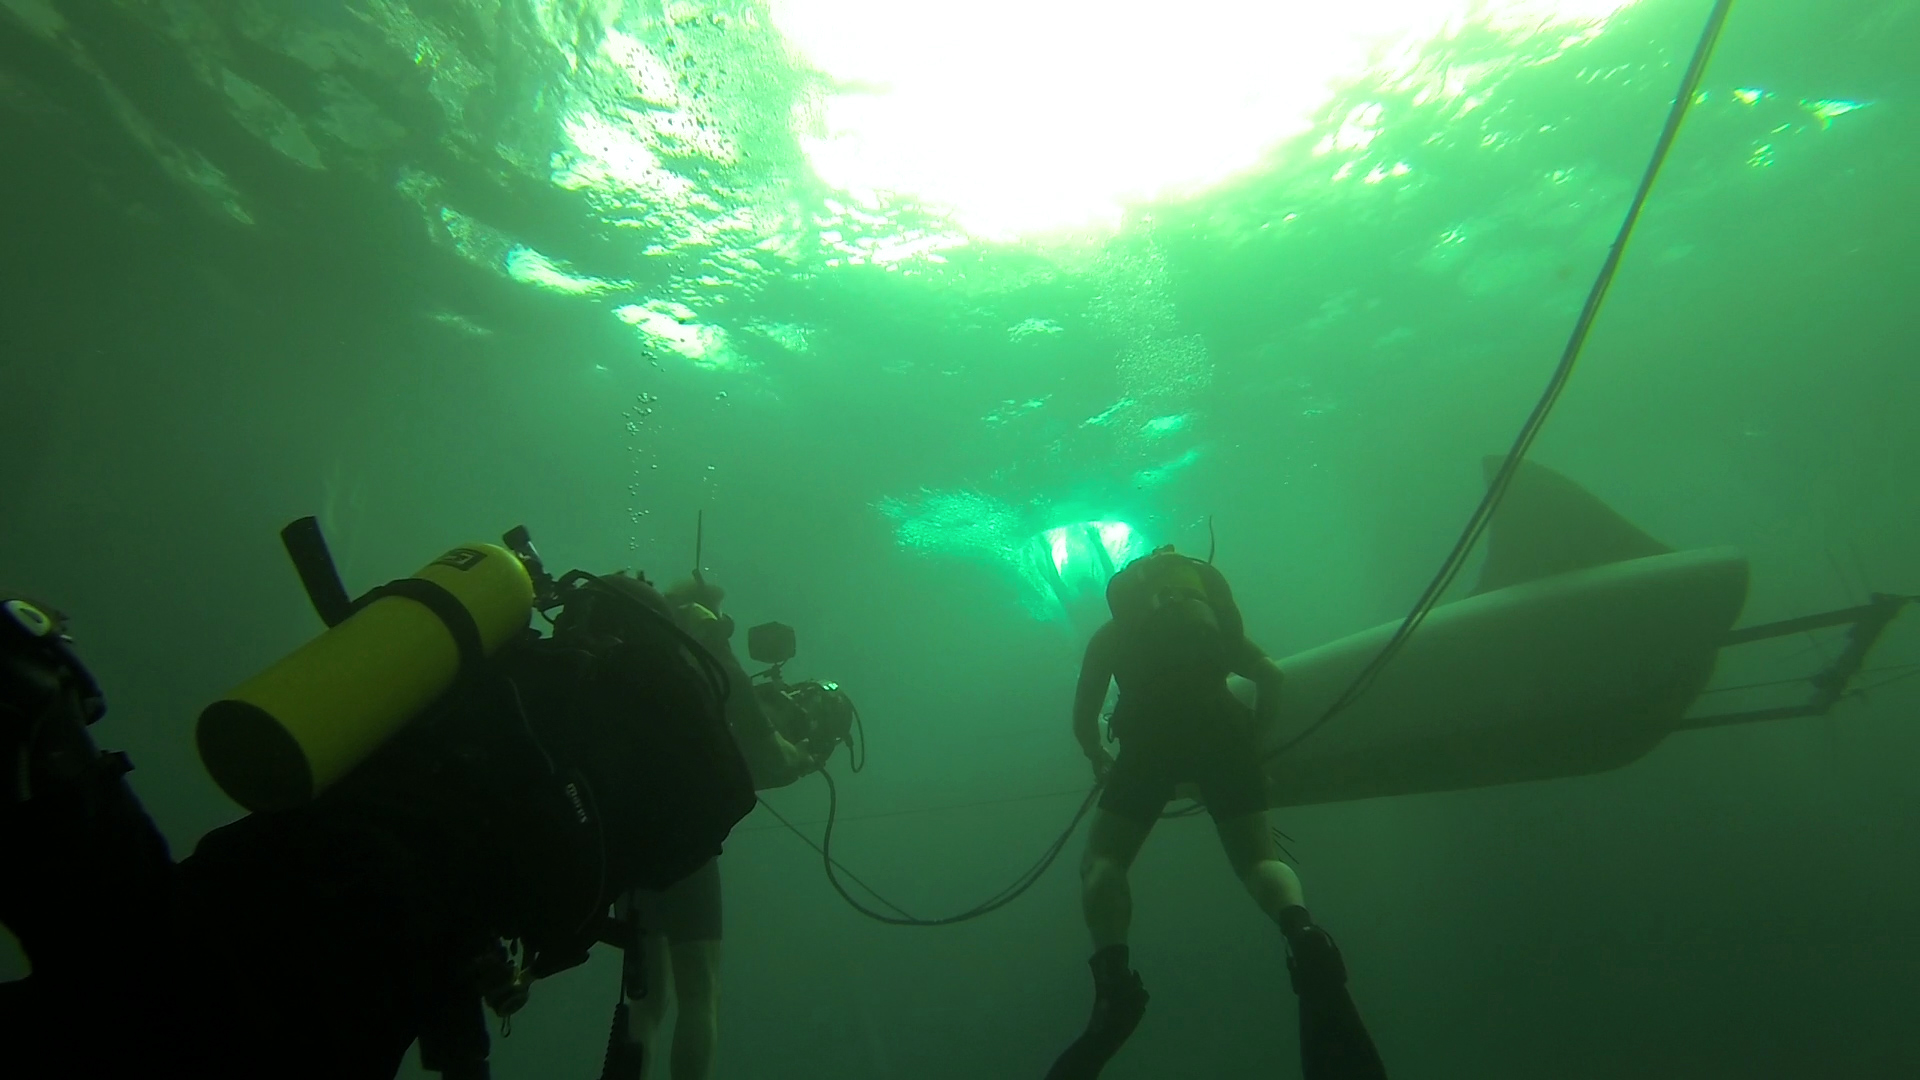 MG-Action, Martin Goeres, Safety Diving, vodaphone3